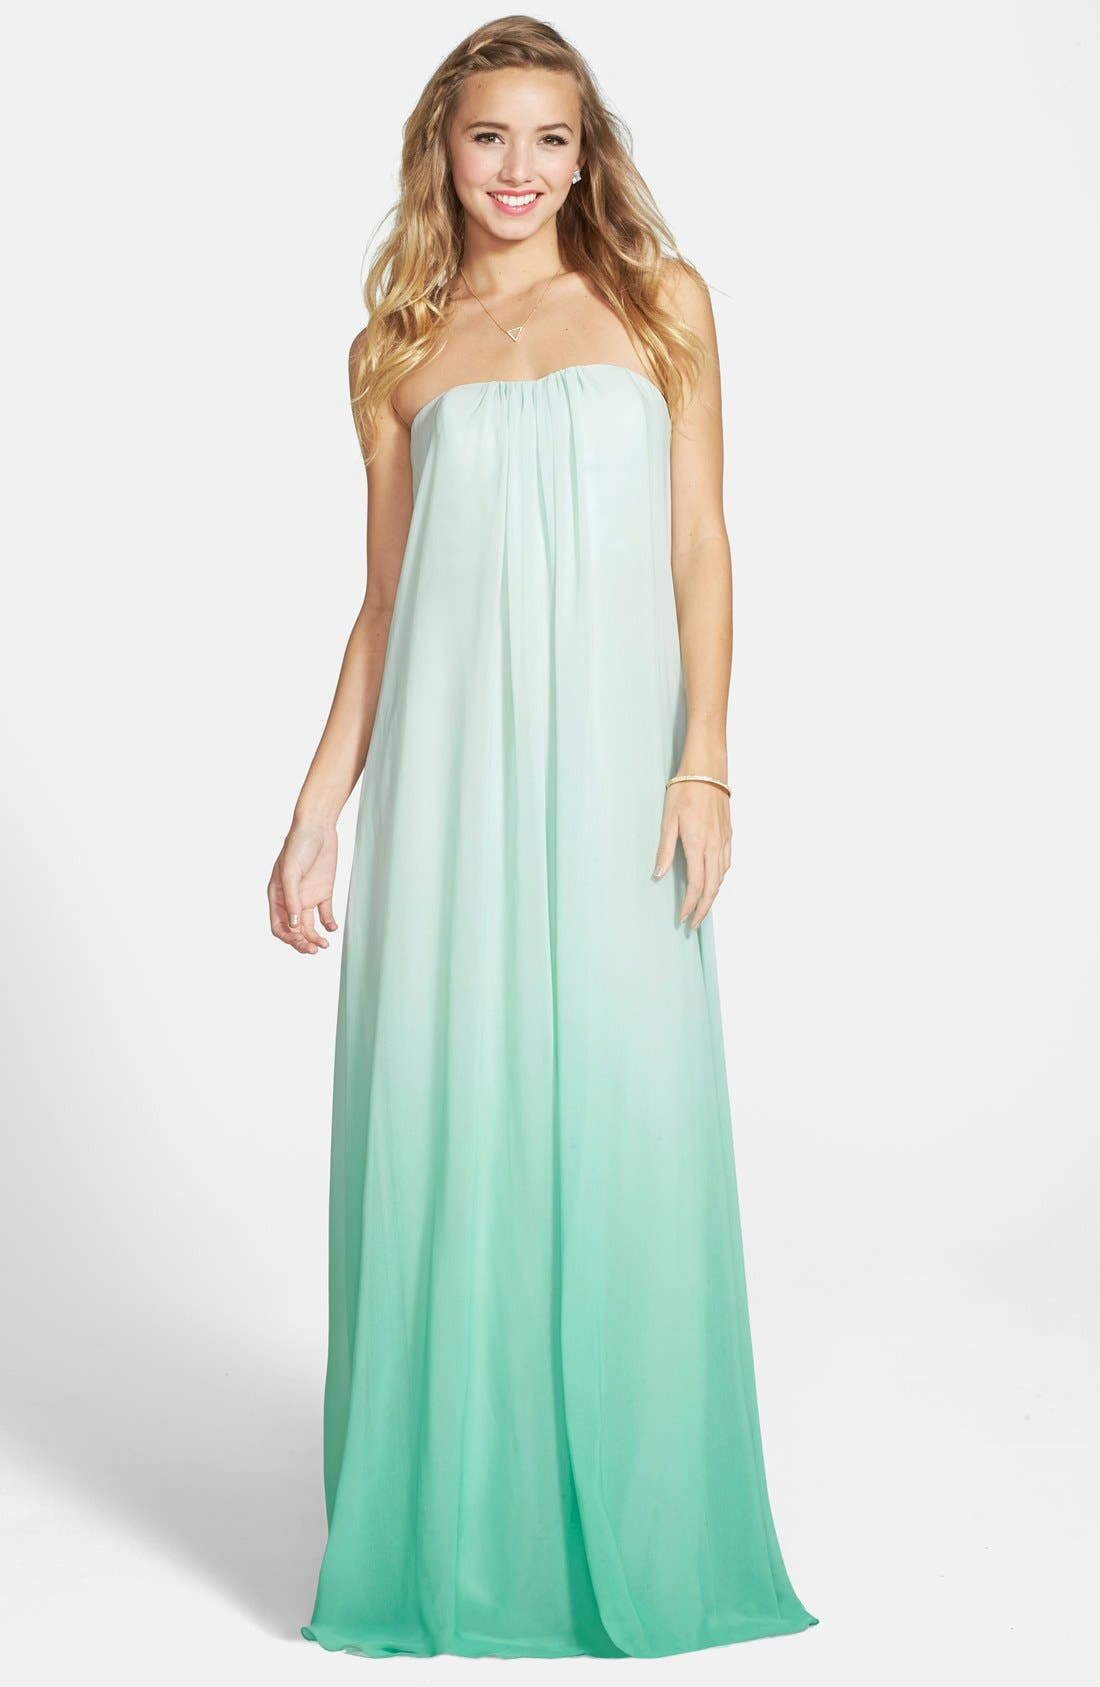 ERIN ERIN FETHERSTON,                             'Daria' Ombré Chiffon A-Line Gown,                             Main thumbnail 1, color,                             303